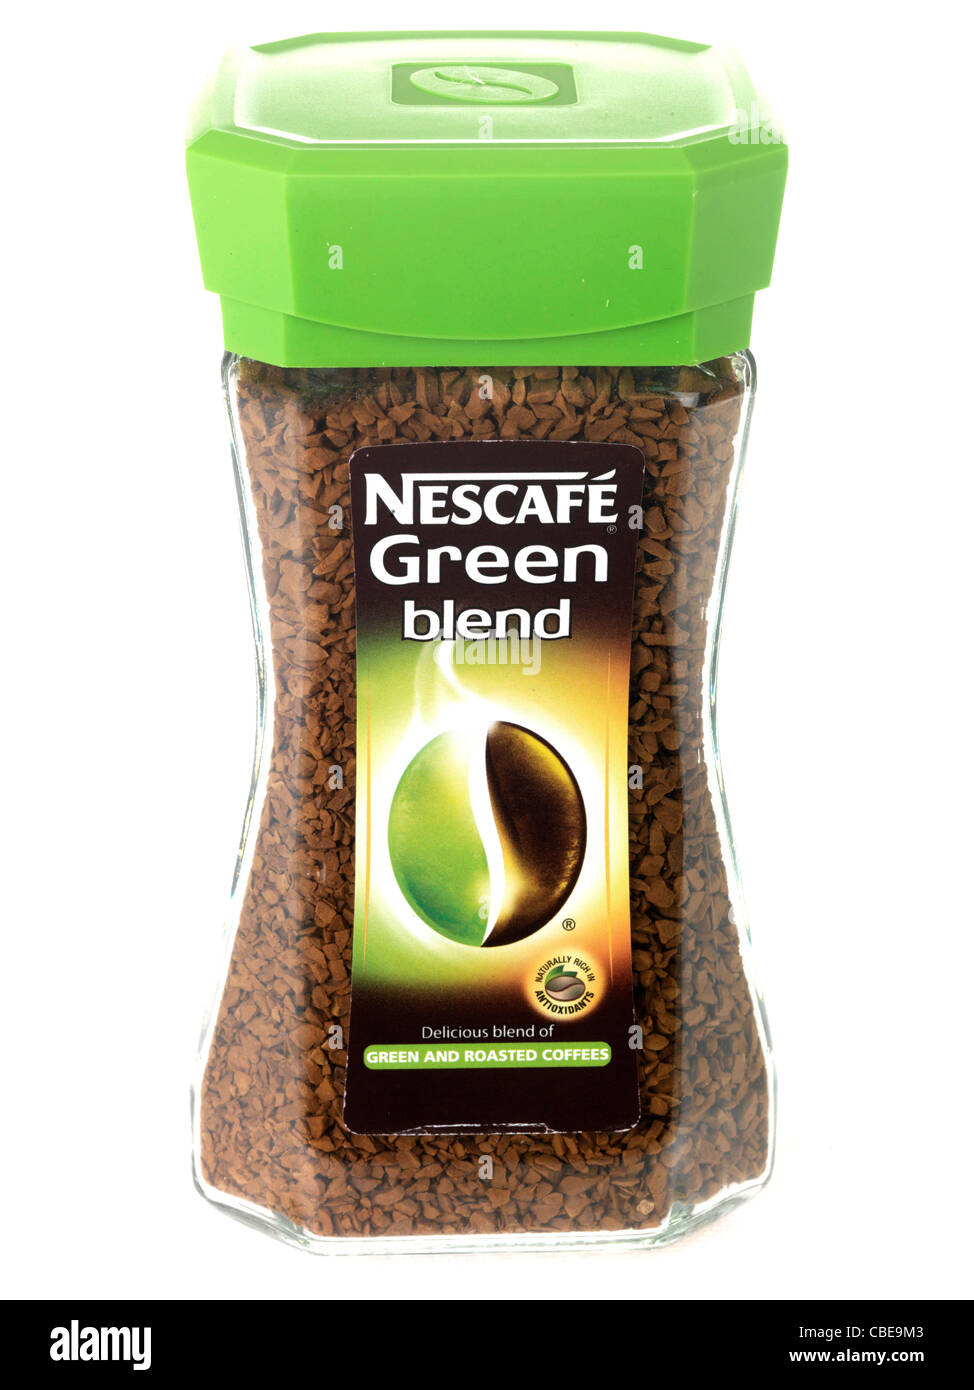 Nescafe Green Blend Coffee Stock Photo Royalty Free Image